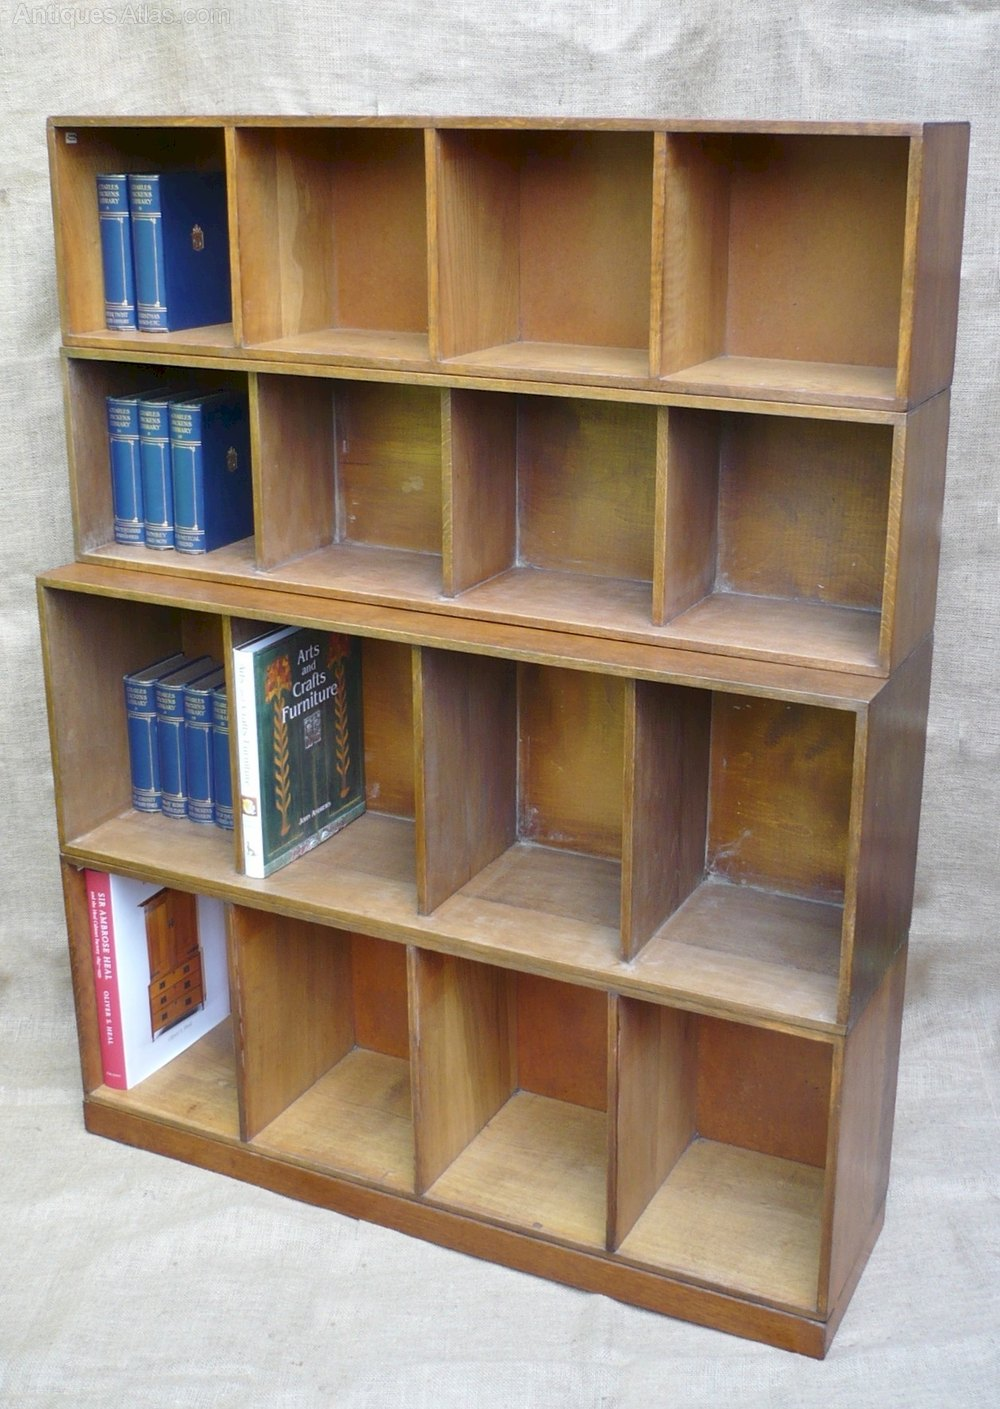 bookcase airport living modular shelving bookcases italia cattelan shop